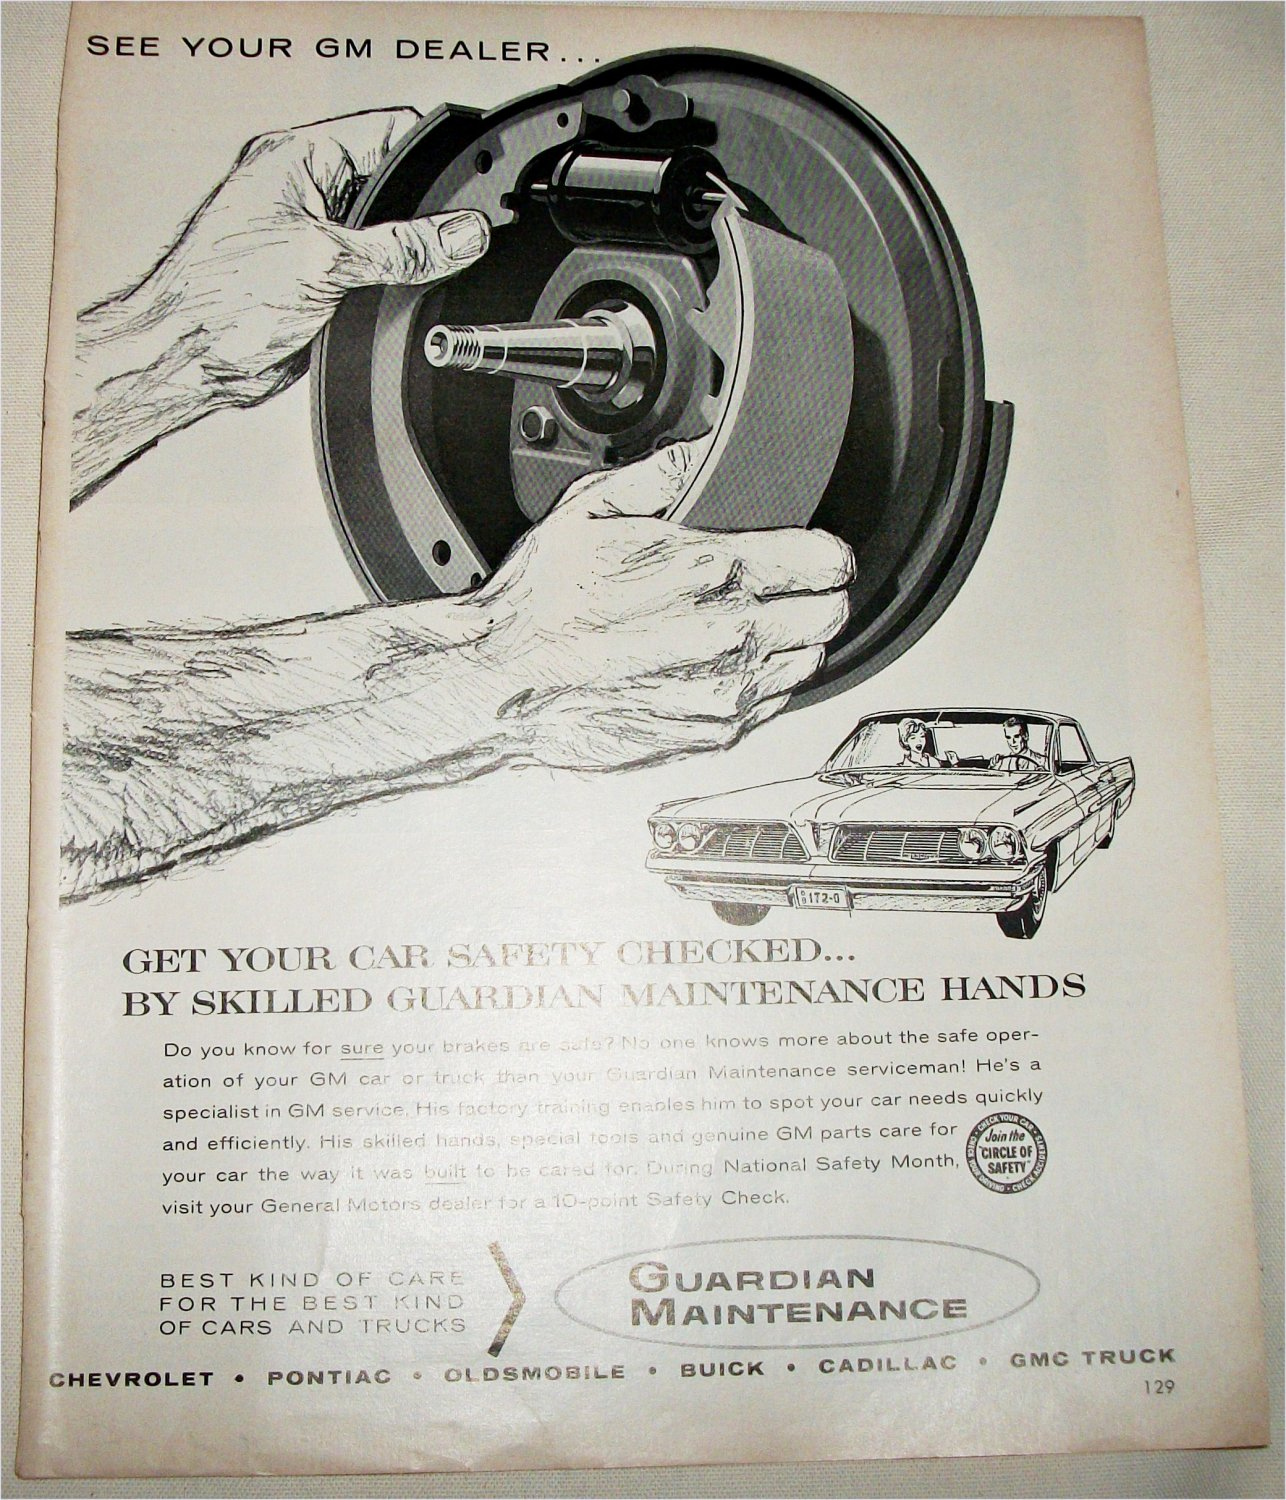 1962 Guardian Maintenance ad #1